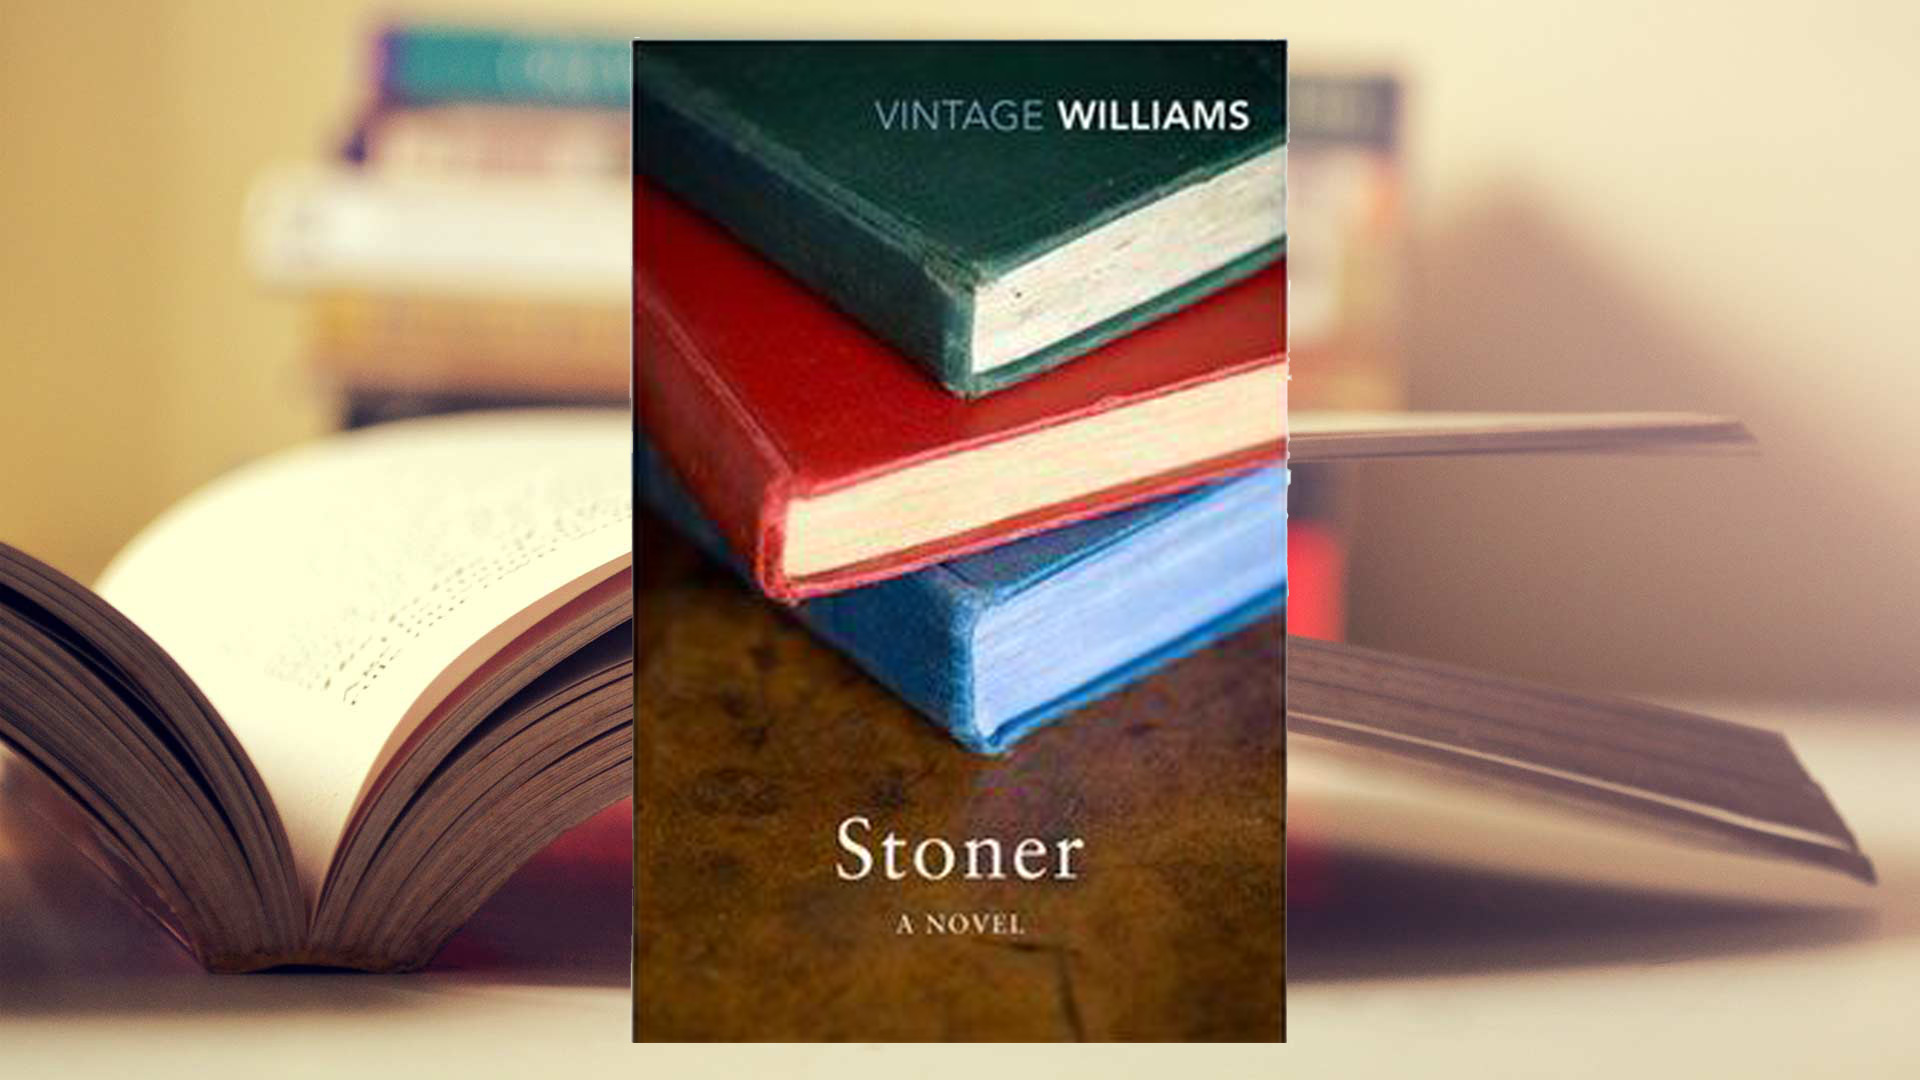 STONER – A NOVEL by John Williams